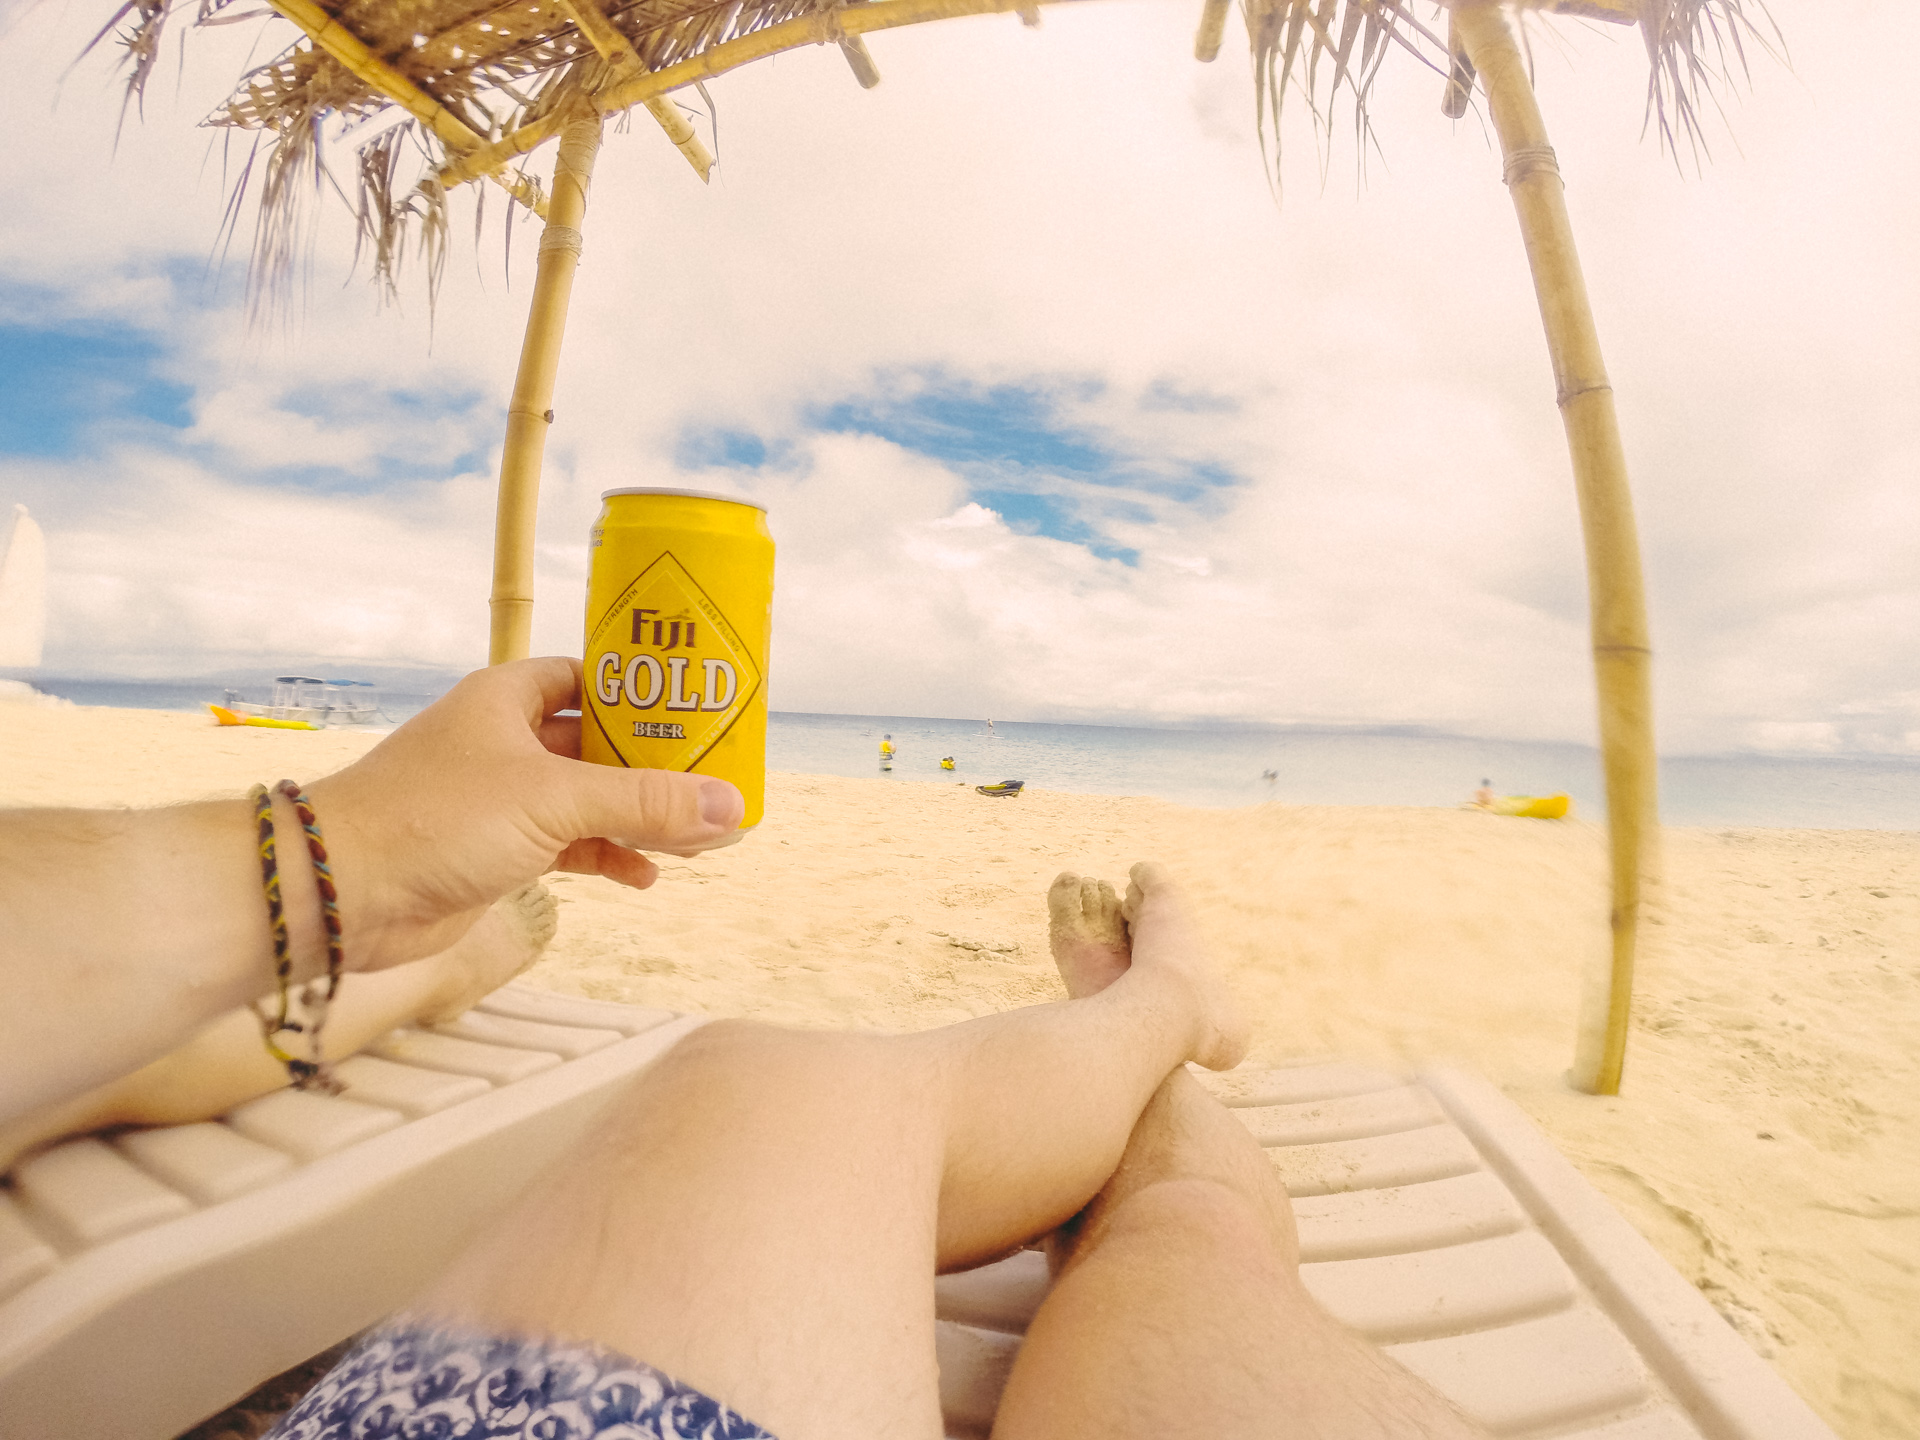 Drinking Fiji Gold Beer on golden beach of South Sea Island, Fiji